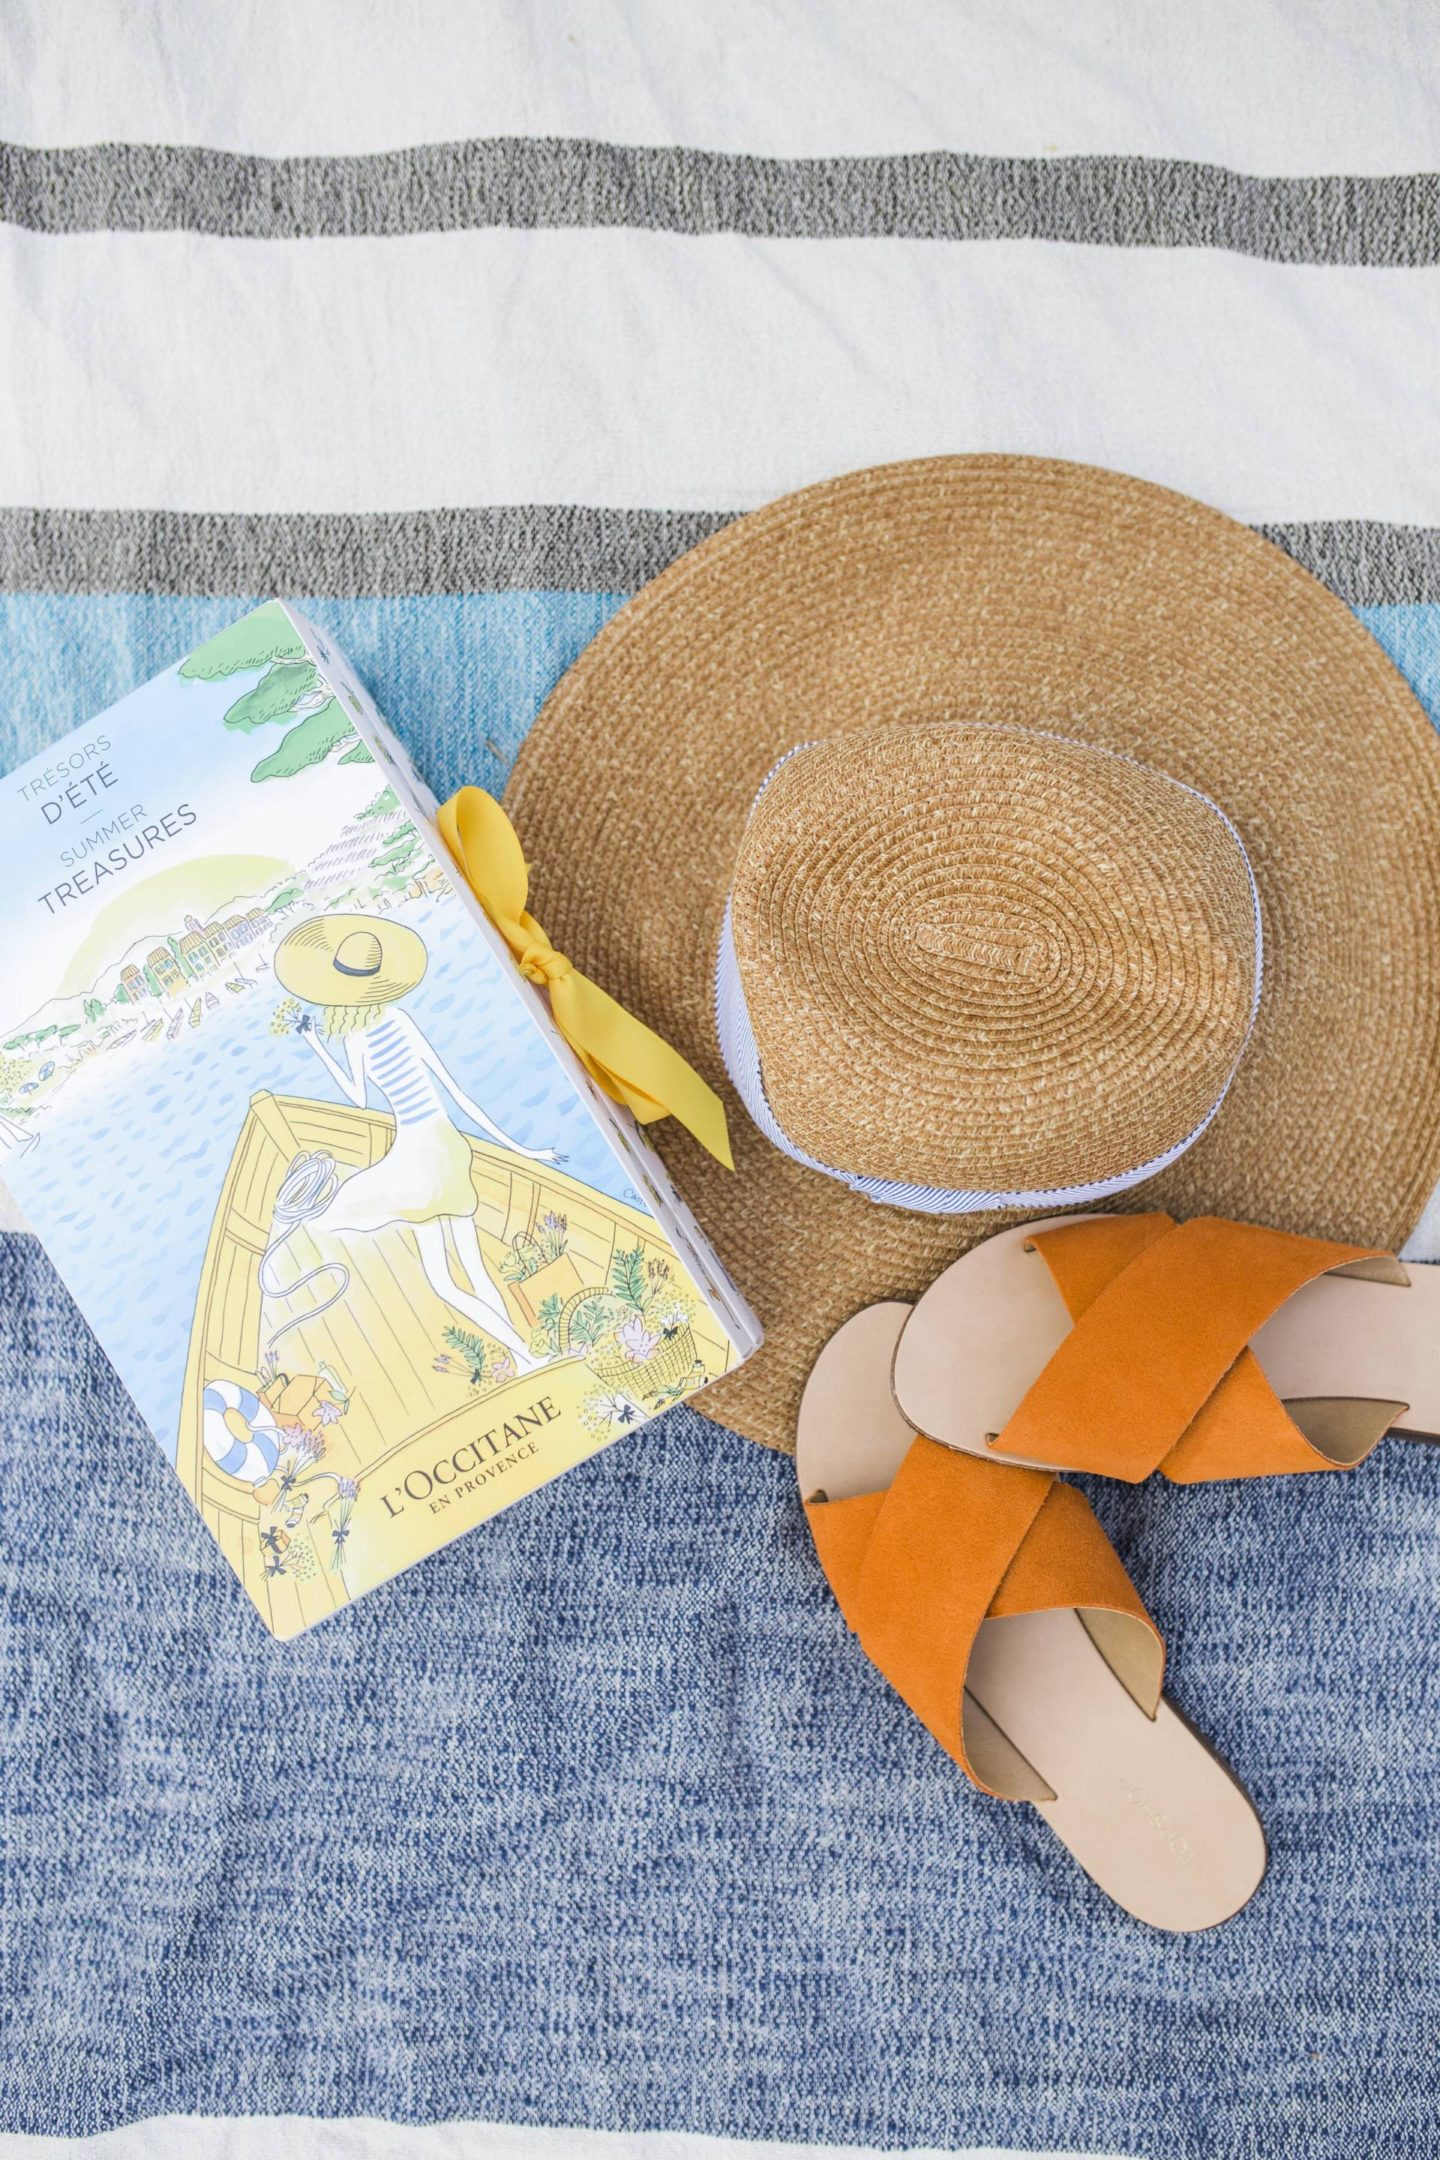 Summer Skin Care Treasures With L'Occitane